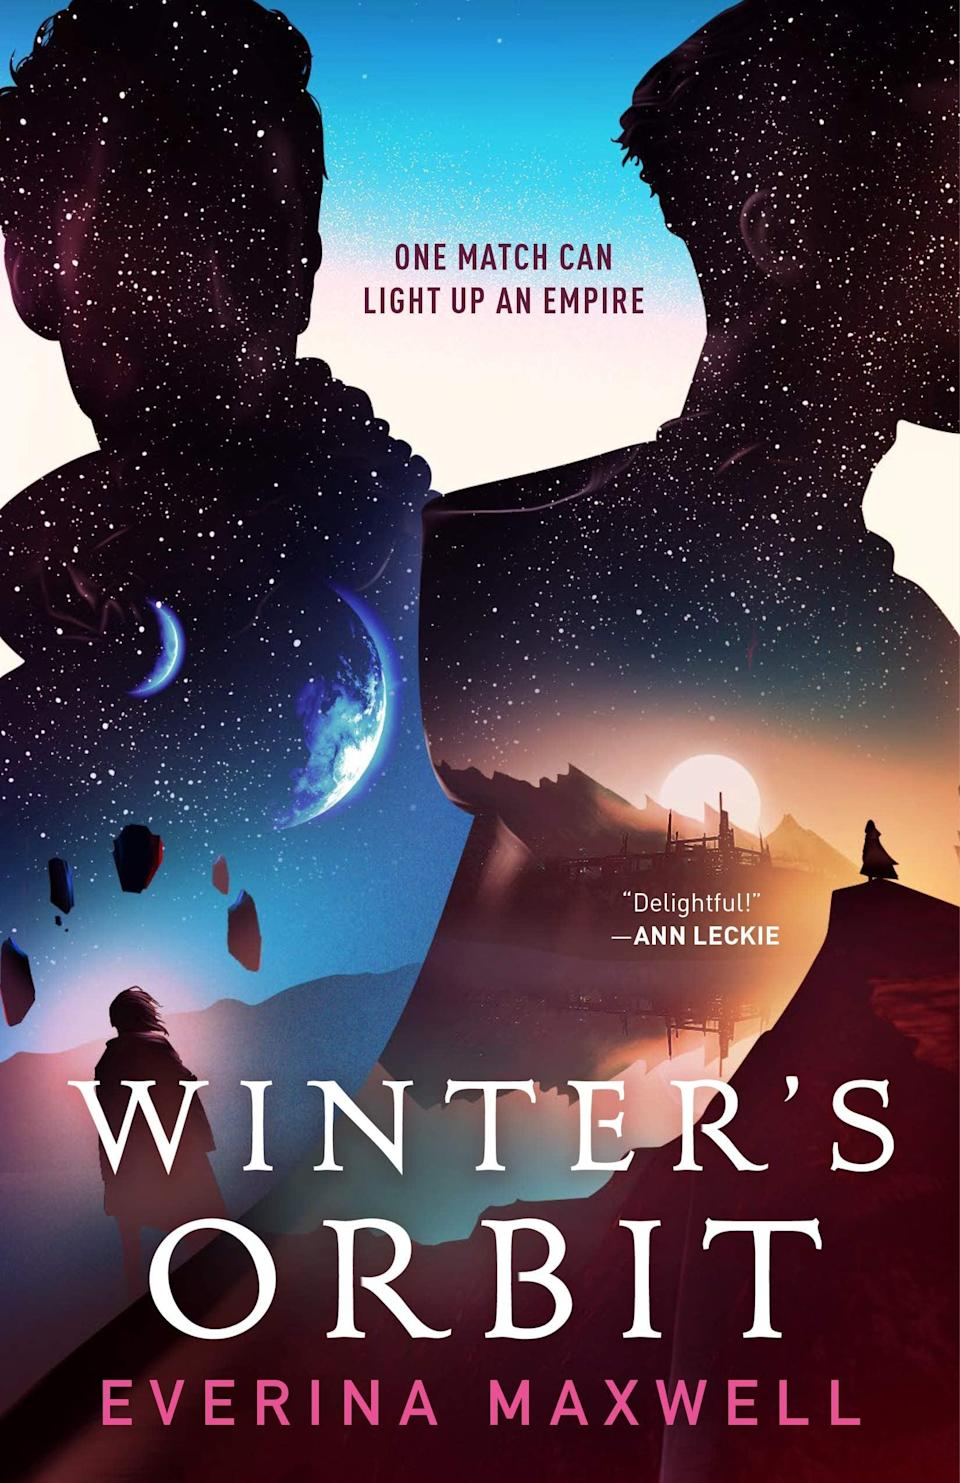 <p><span><strong>Winter's Orbit</strong></span> by Everina Maxwell is already drawing comparisons to Casey McQuiston's <strong>Red, White and Royal Blue</strong>, but this political romance comes with a twist: it's a sci-fi tale about a marriage between a minor royal and a count who is convinced his previous husband was murdered. In order to unite the empire, the marriage of convenience between Prince Kiem and Count Jainan must not fail, but there are no guarantees when a far-reaching conspiracy threatens the peace they're fighting for.</p> <p><em>Out Feb. 2</em></p>